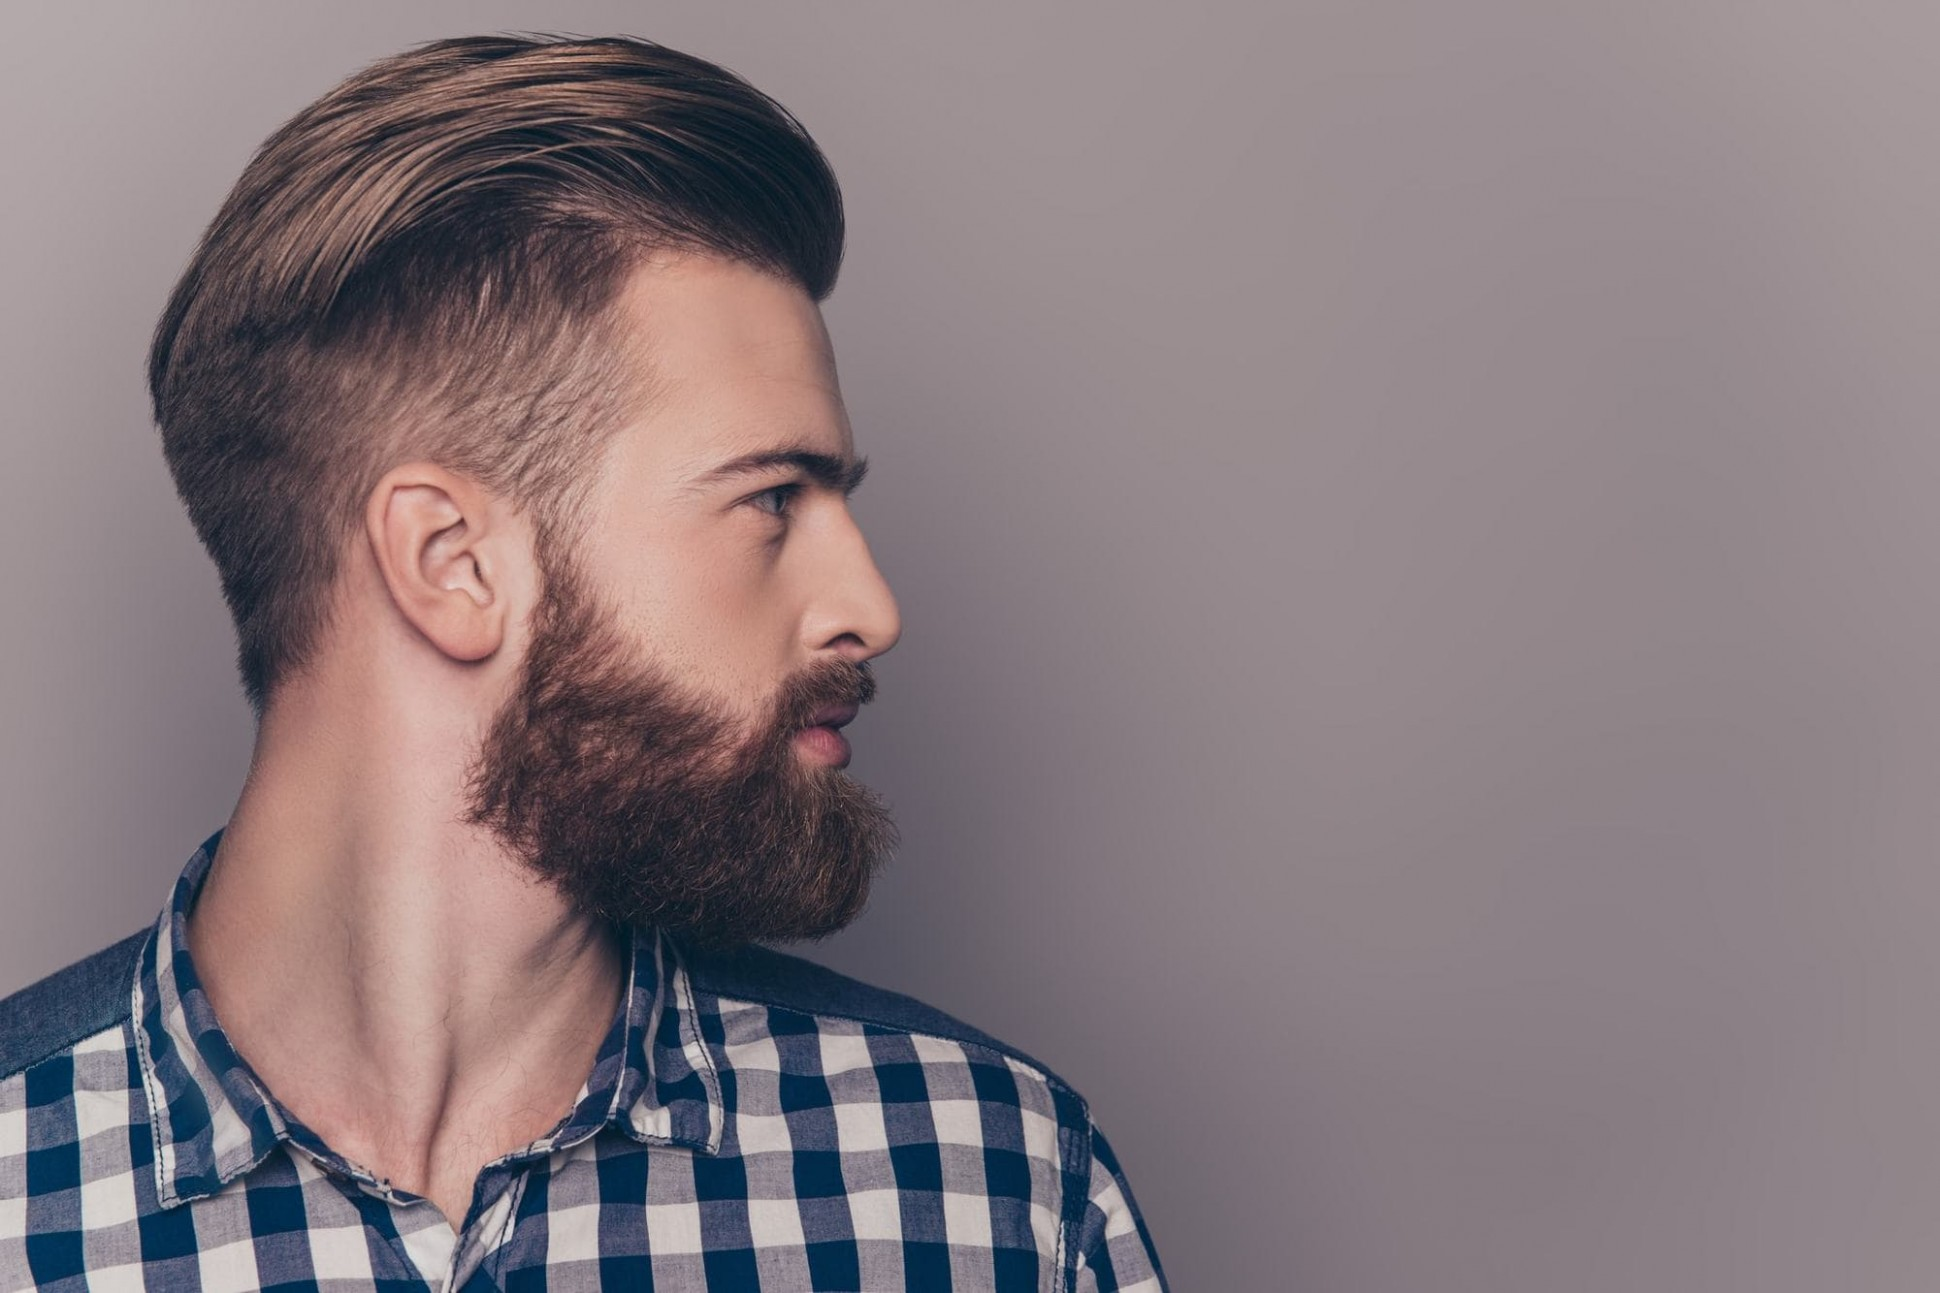 Short Hairstyles For Men With Thick Hair: 11 Styles We Love Short Haircuts For Men With Thick Hair